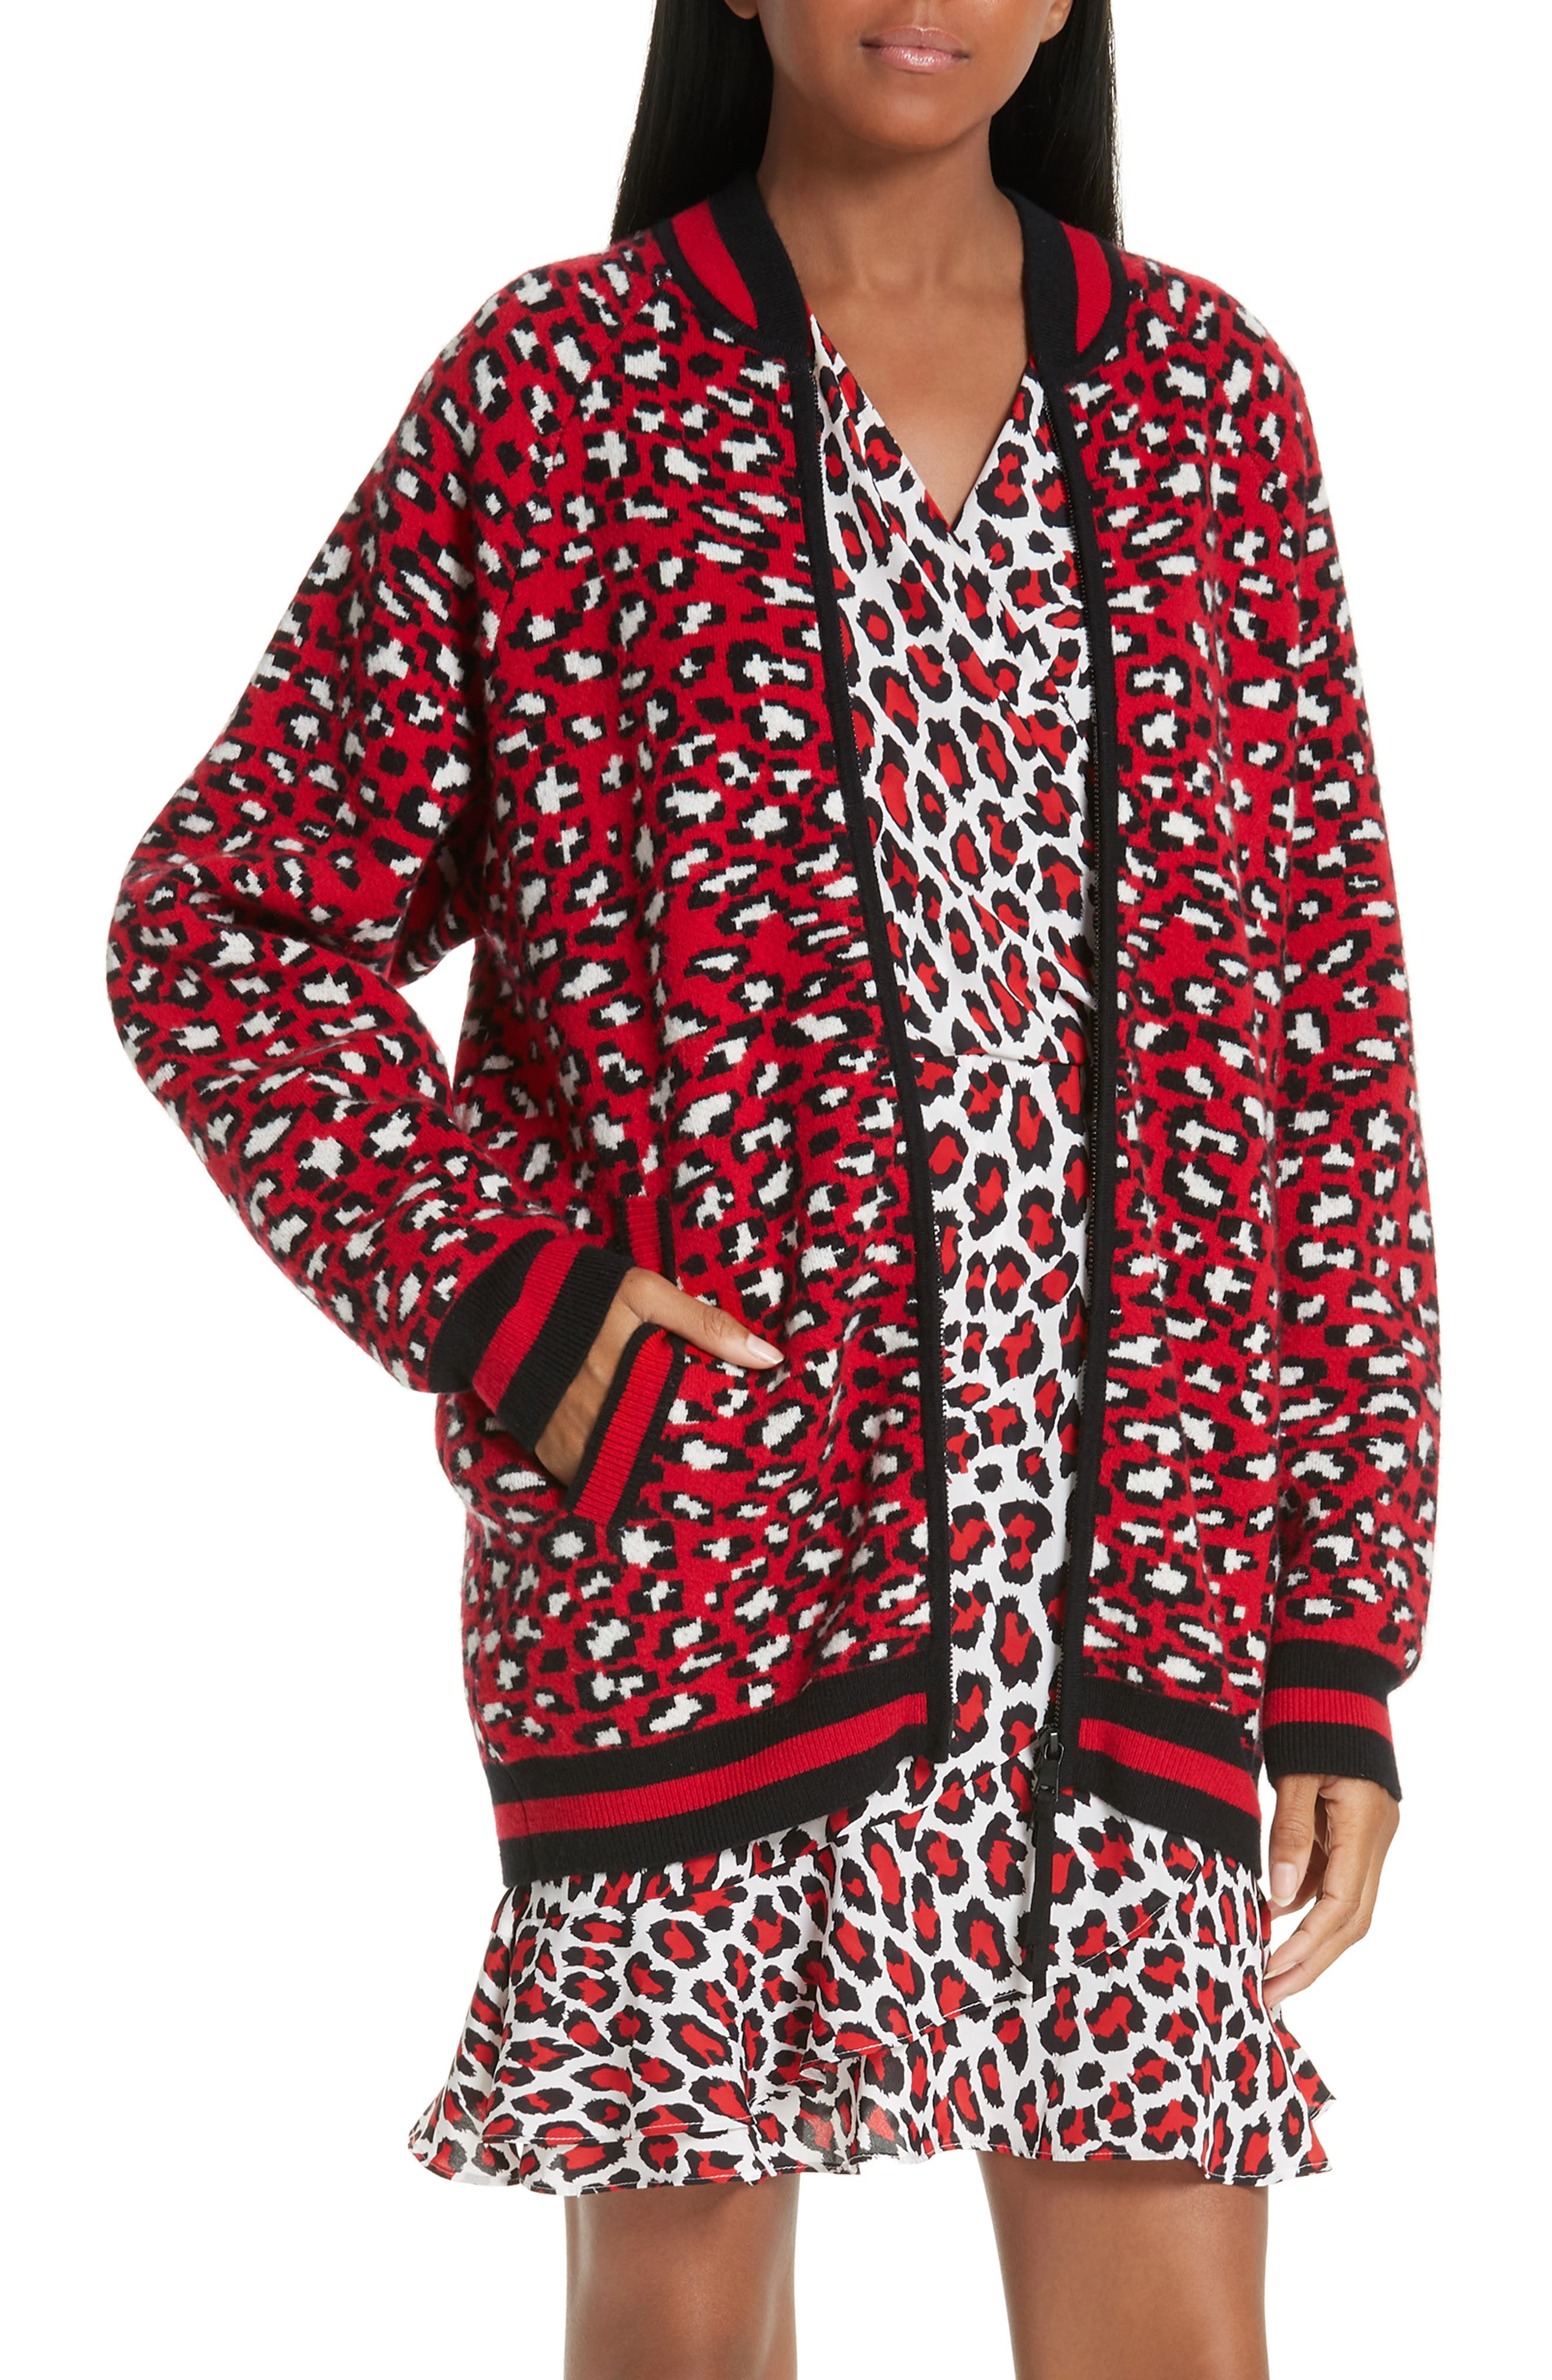 ROBERT RODRIGUEZ Constance Leopard Print Wool & Cashmere Blend Zip-Up Sweater in Red/ White/ Black